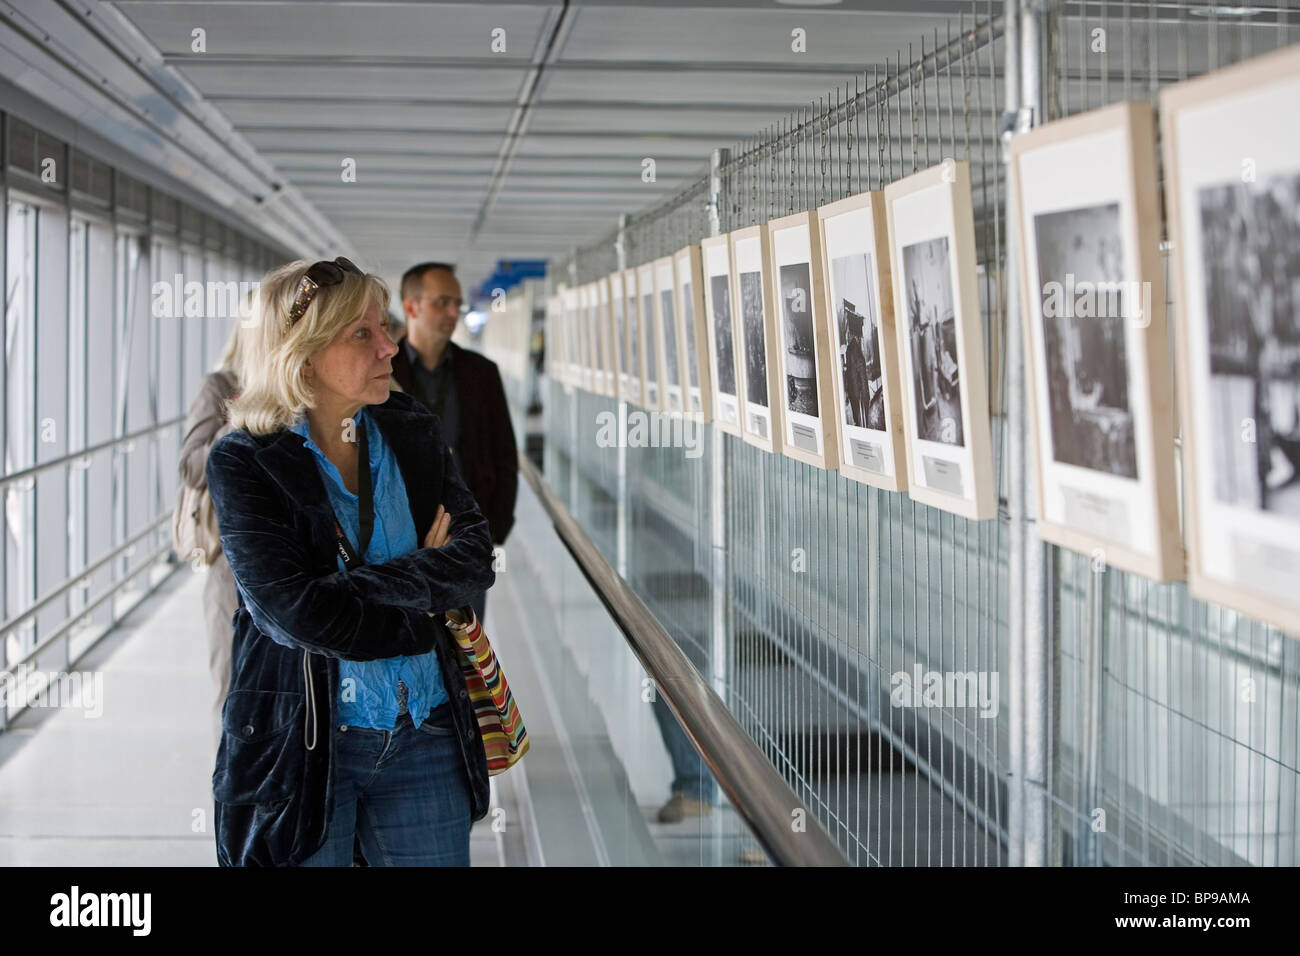 exhibition in the Skywalk at the Lumix Festival for Young Photojournalism in Hannover, University of Applied Sciences - Stock Image